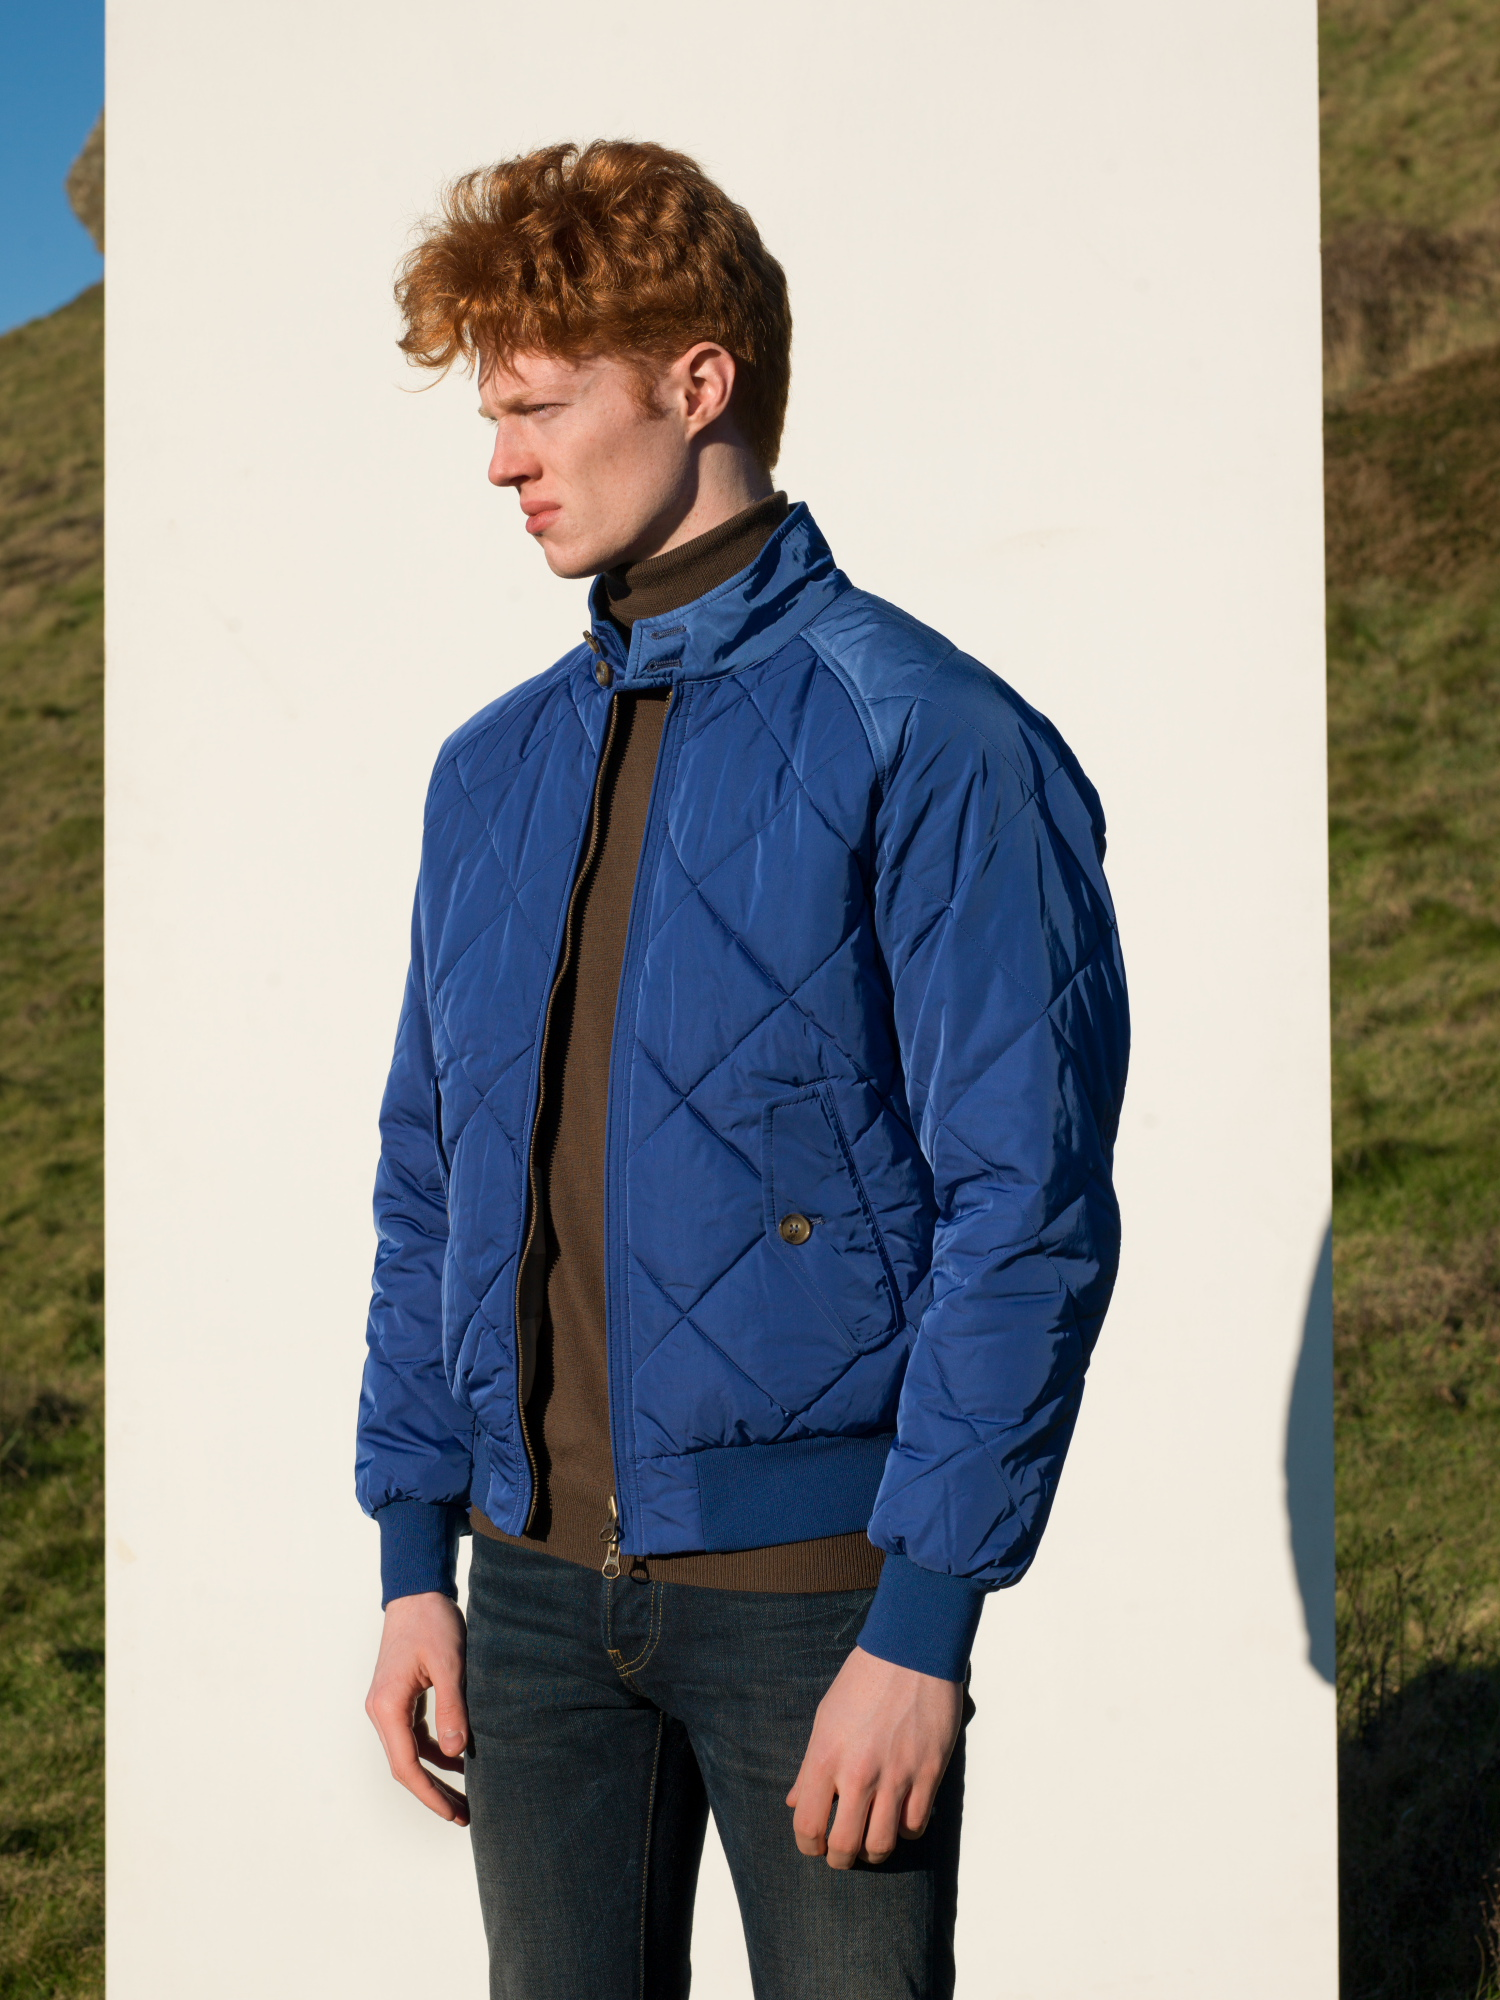 Baracuta Blue Label: AW14 Collection images